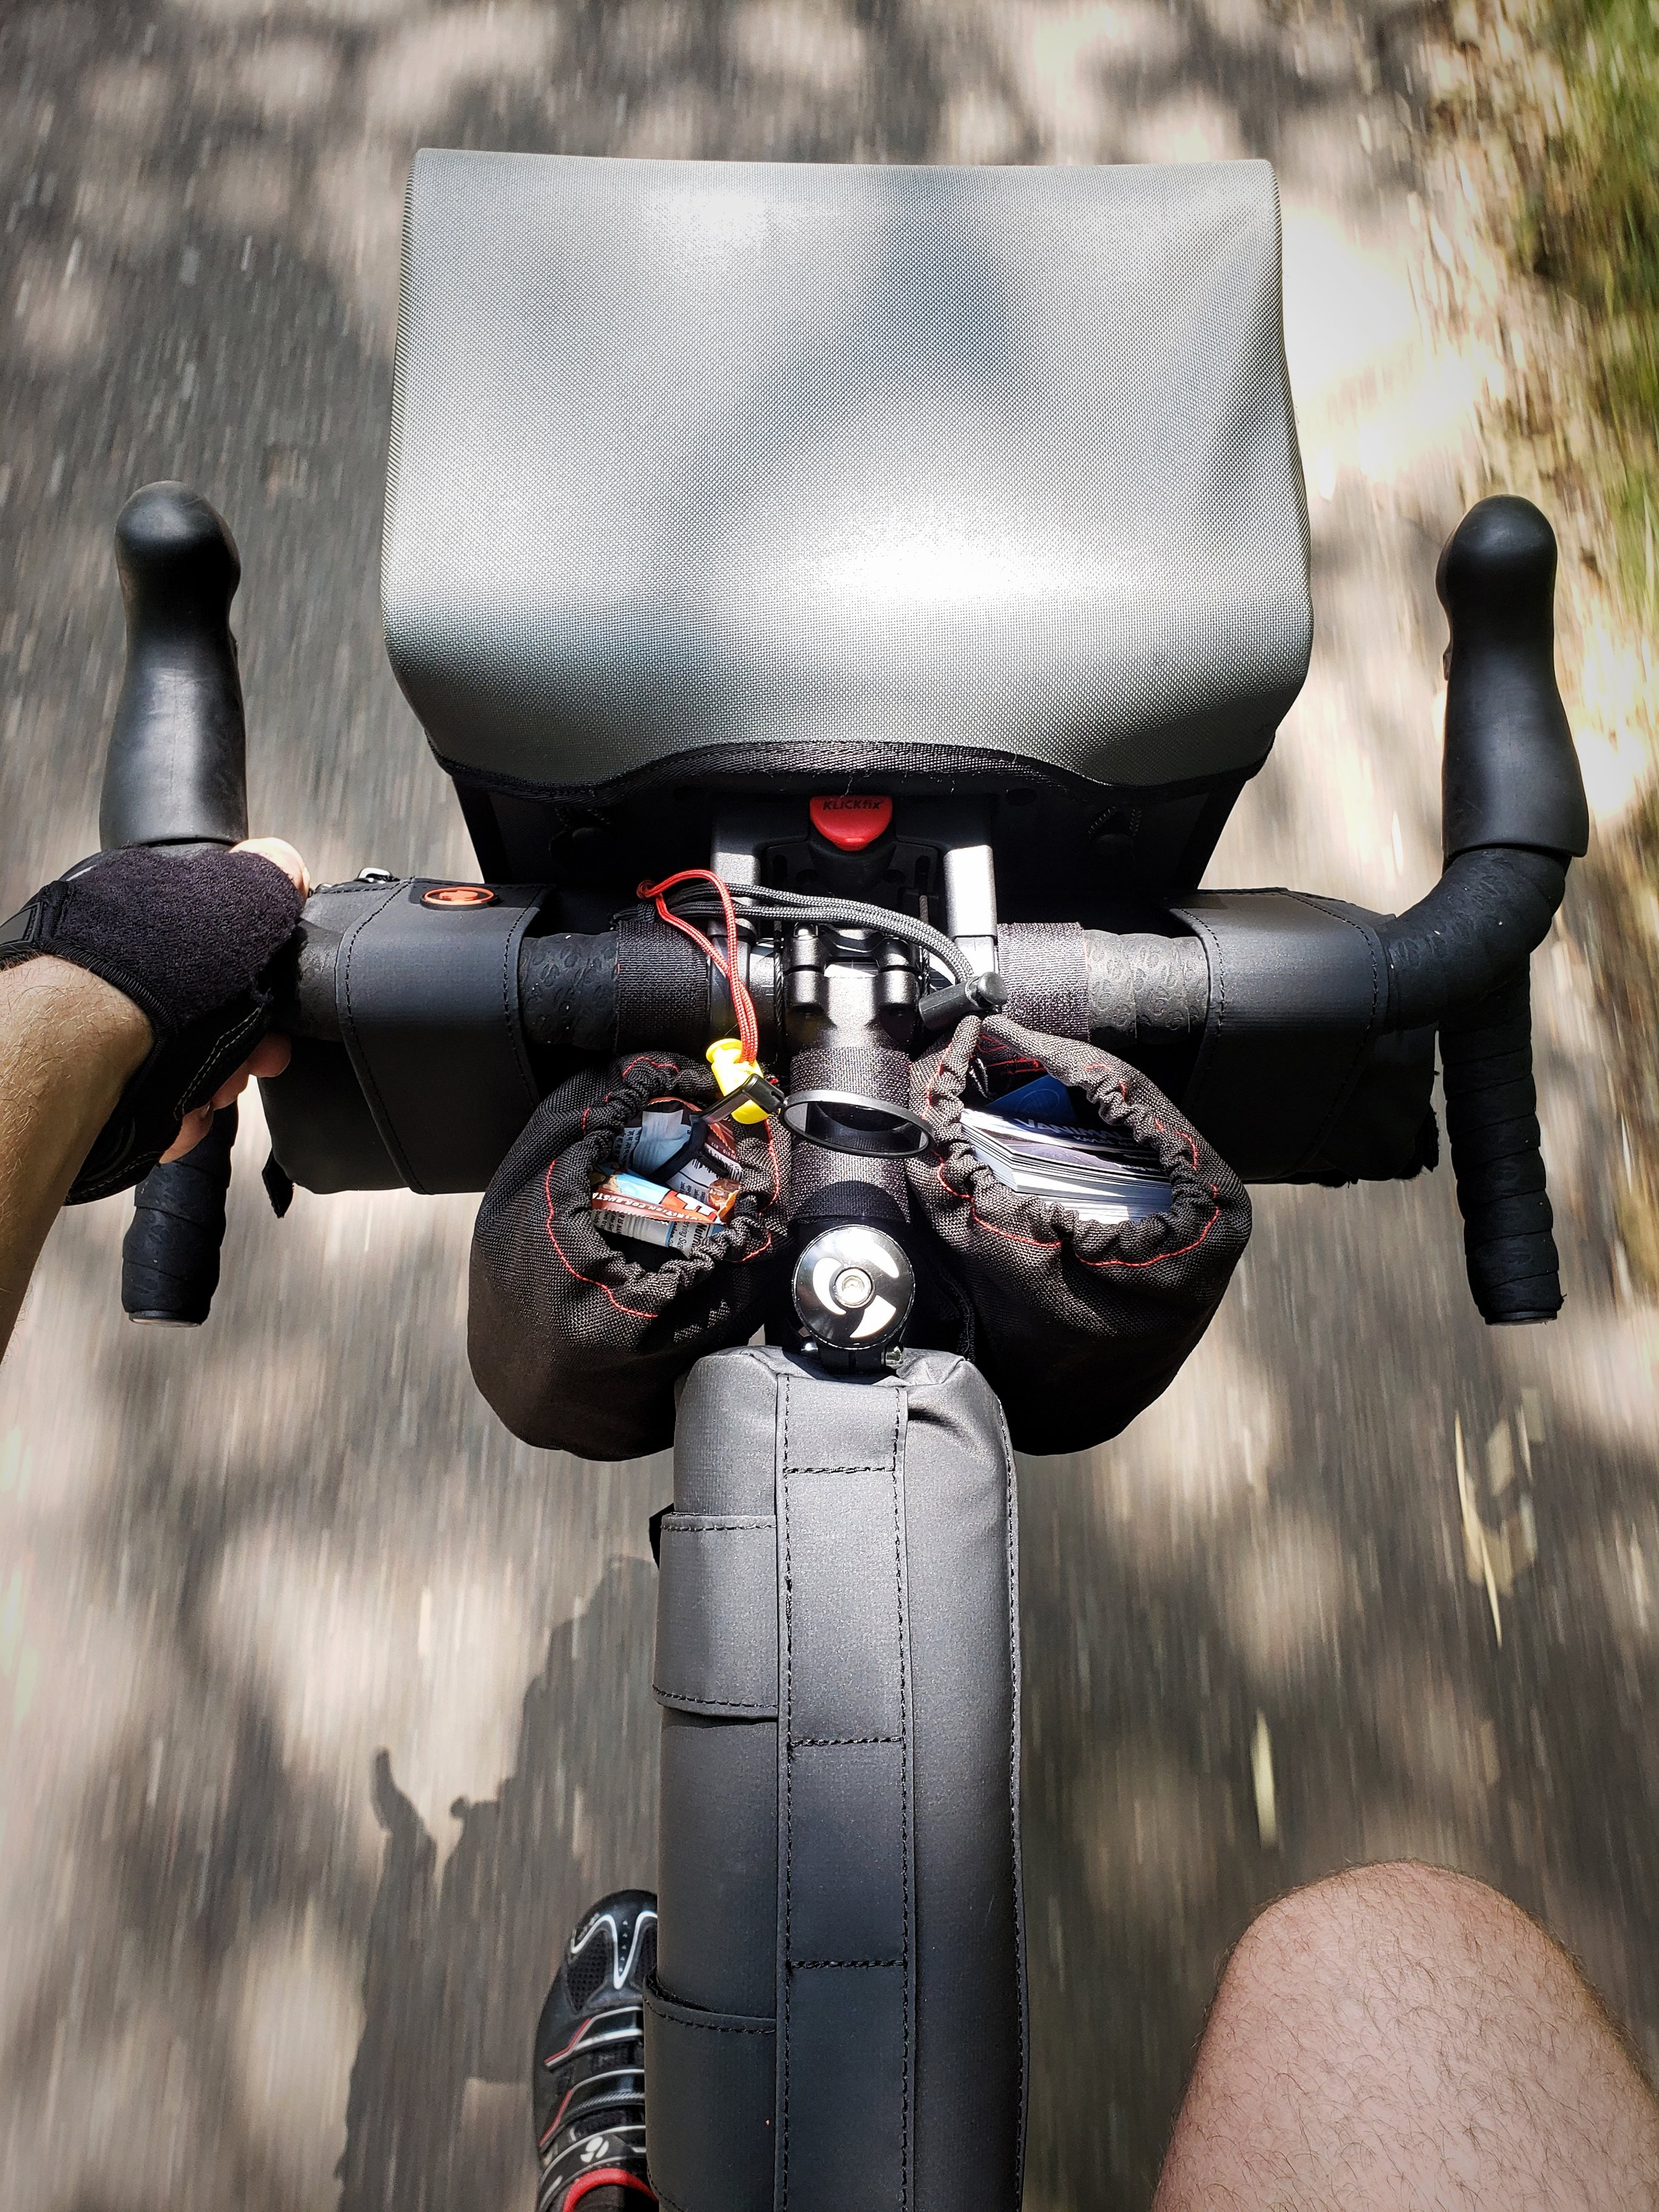 In addition to his DIY frame pack, Ian has two STASHERS insulated bags on his handlebars and one smaller one attached to his top tube.